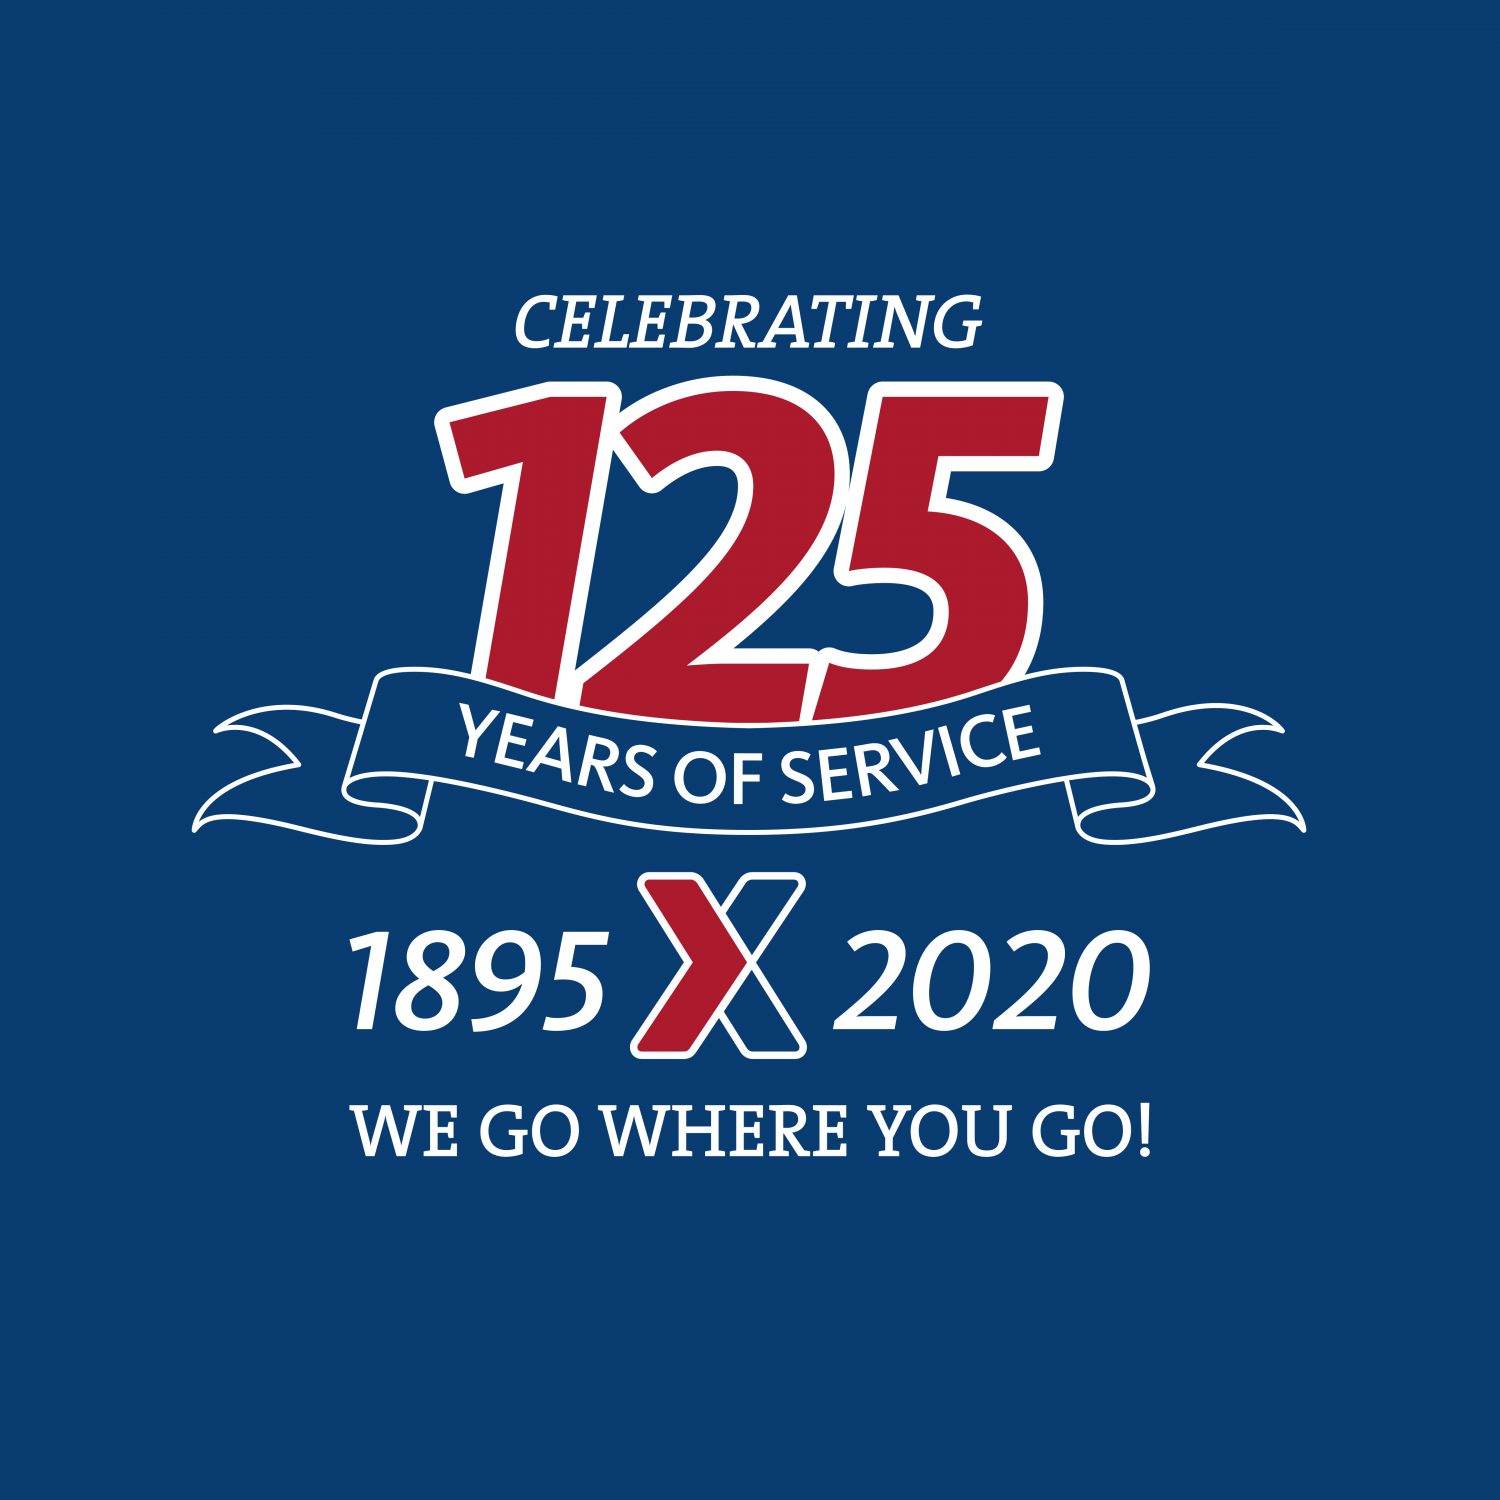 Army & Air Force Exchange Service: Celebrating 125 Years of Service